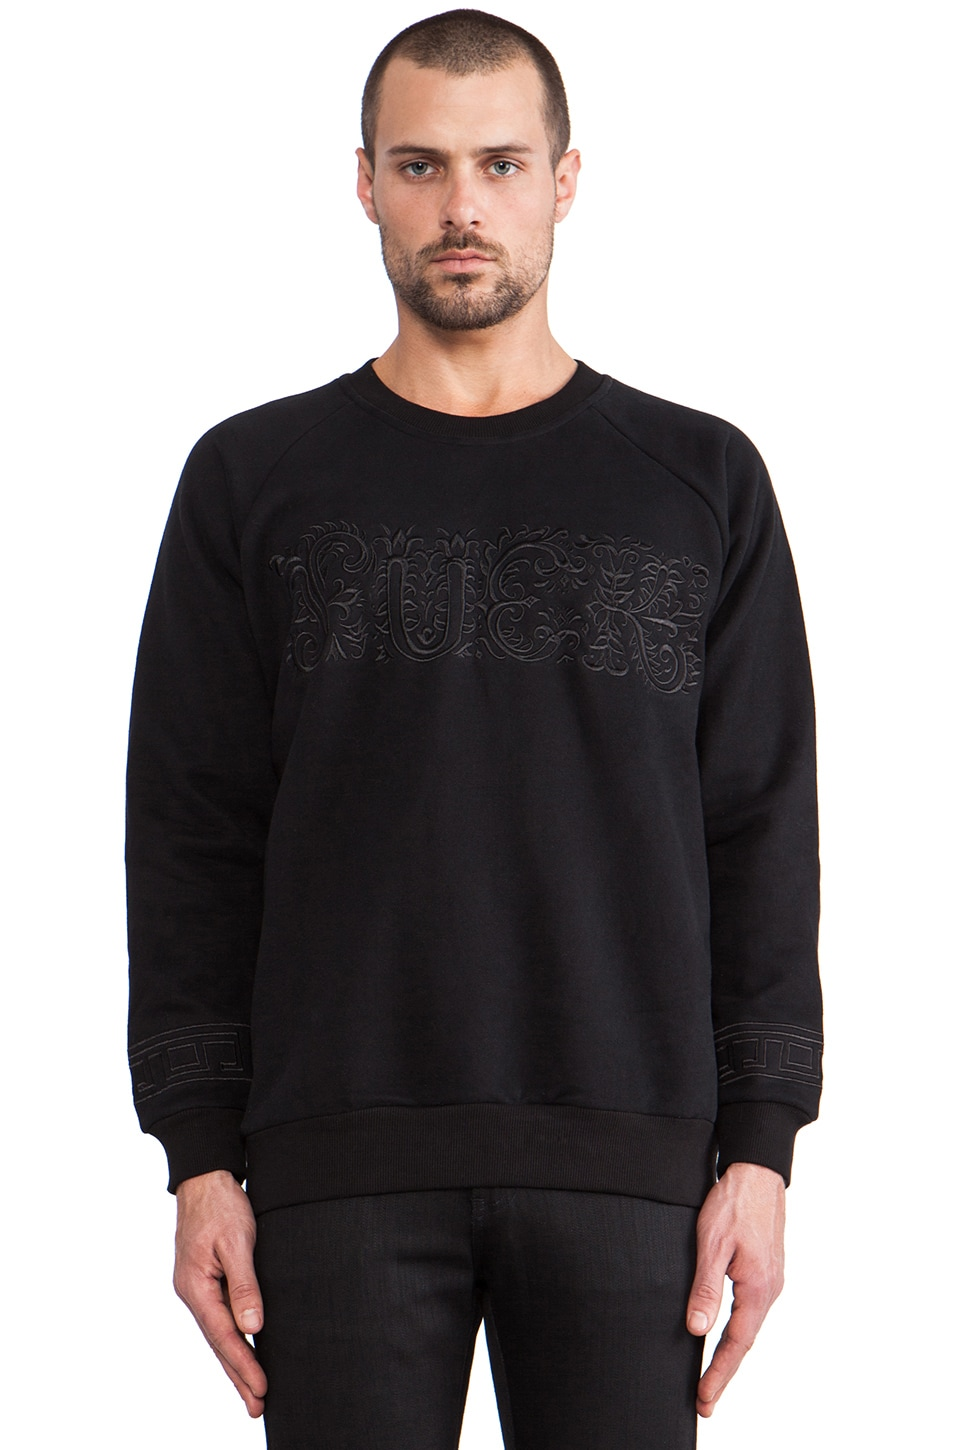 UNIF Ornate Sweatshirt in Black